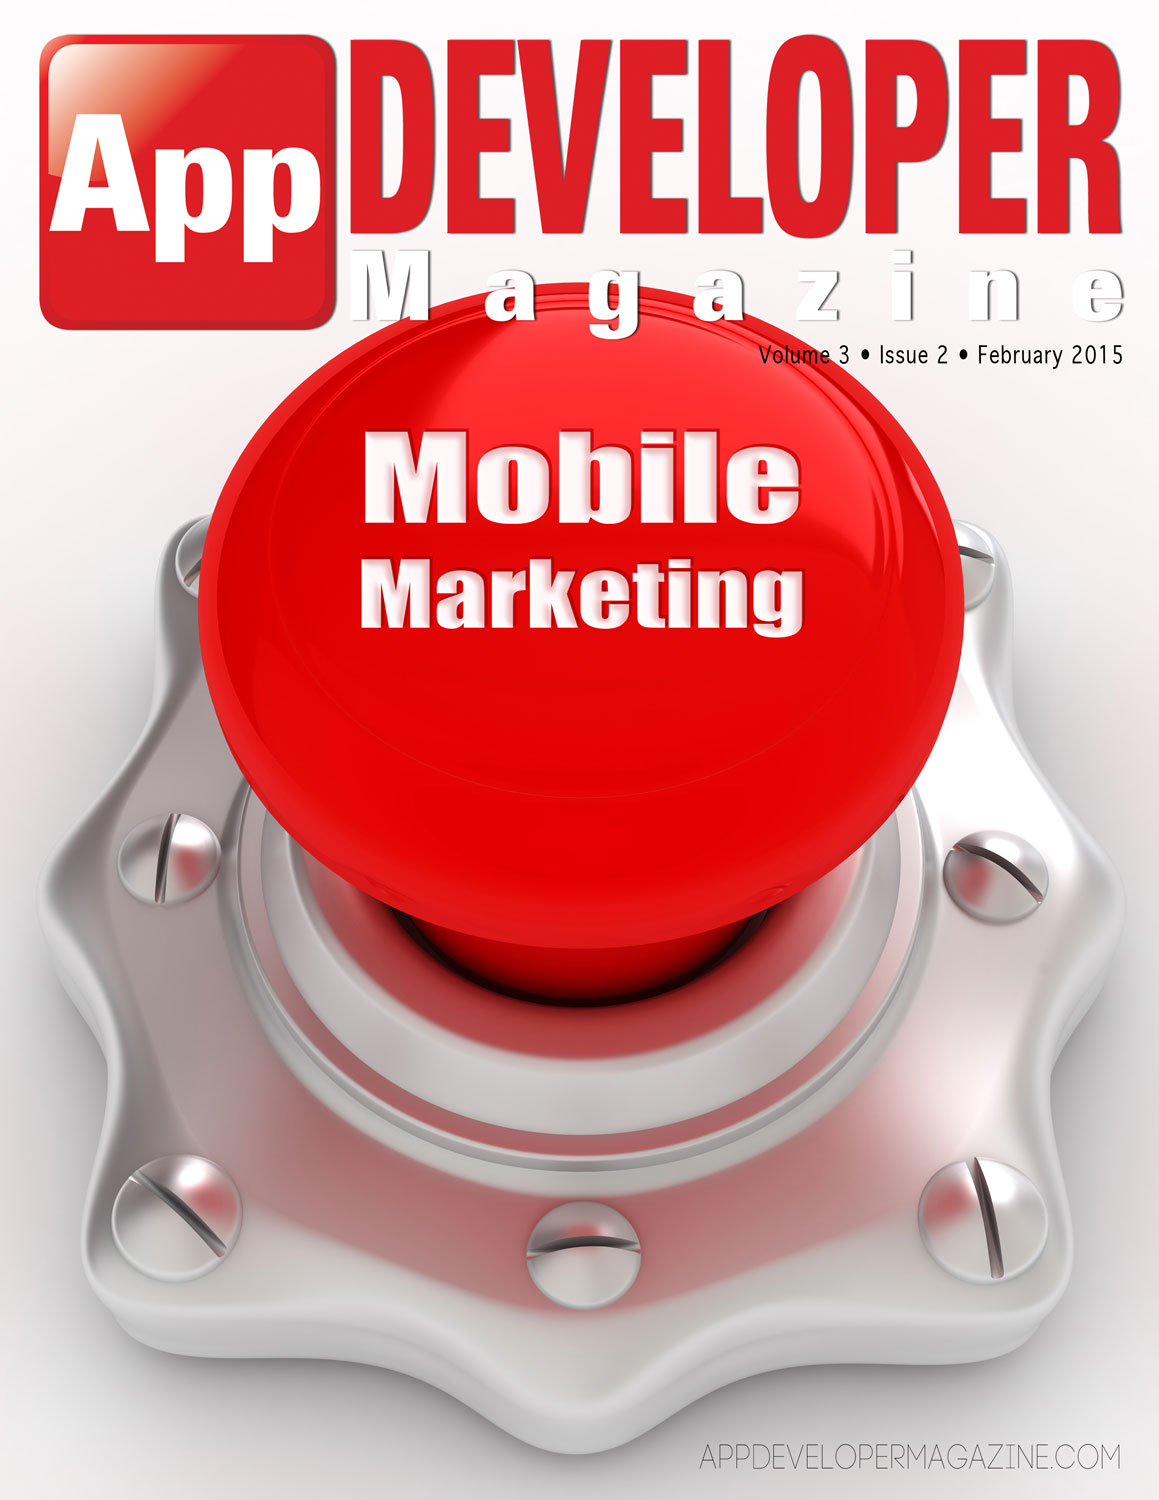 Read App Developer Magazine February 2015 issue